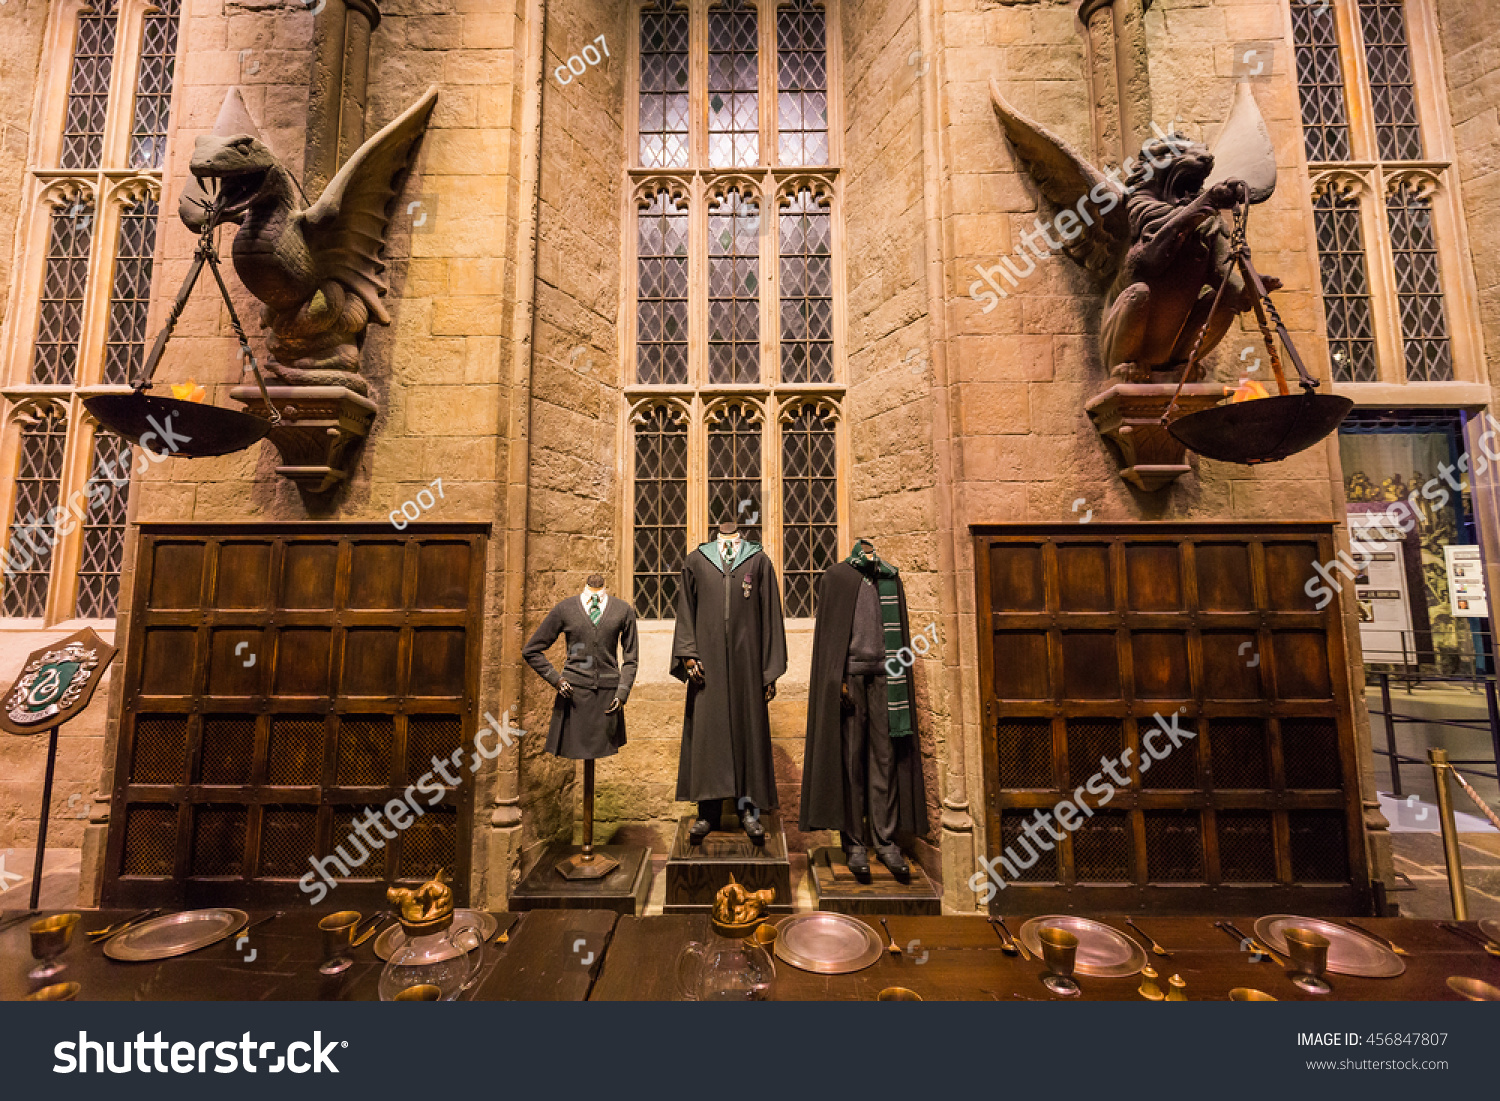 Leavesden London March 3 2016 The Hall in the Warner Brothers Studio tour The making of Harry Potter'.There is model of Slytherin from Harry Potter film